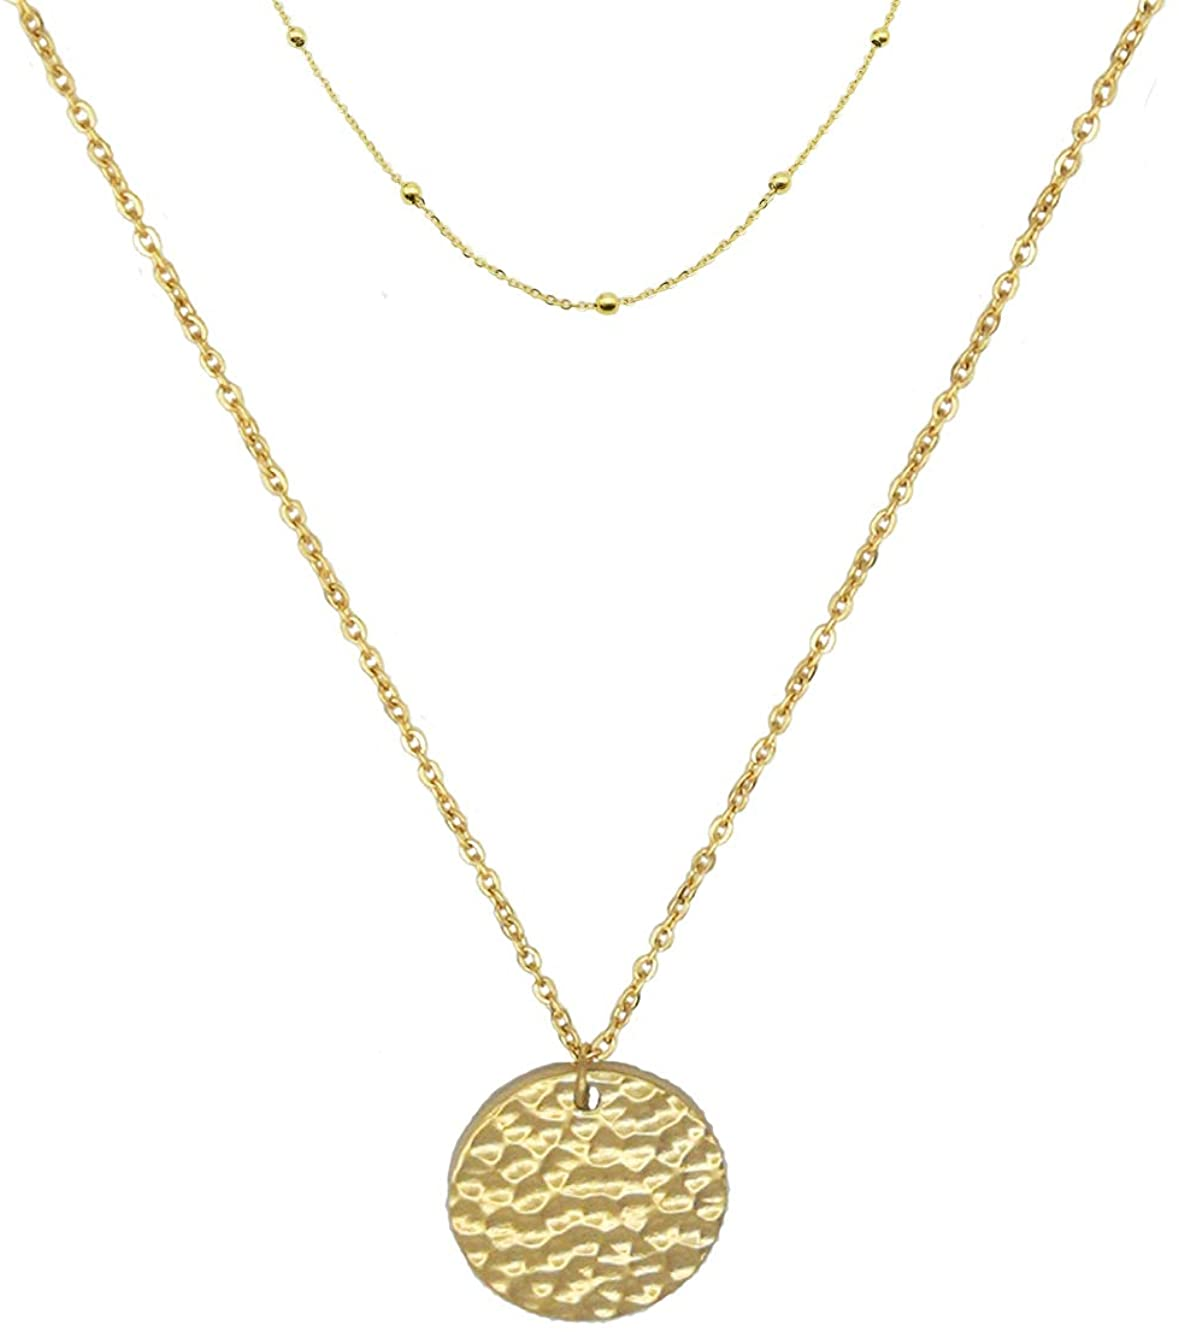 QHTX Gold Bar Necklace Stainless Steel Gold Plated Adjustable Chain with Pendant for Women Girls Simple Delicate Handmade Personalized Jewelry(16+2 Inch)…